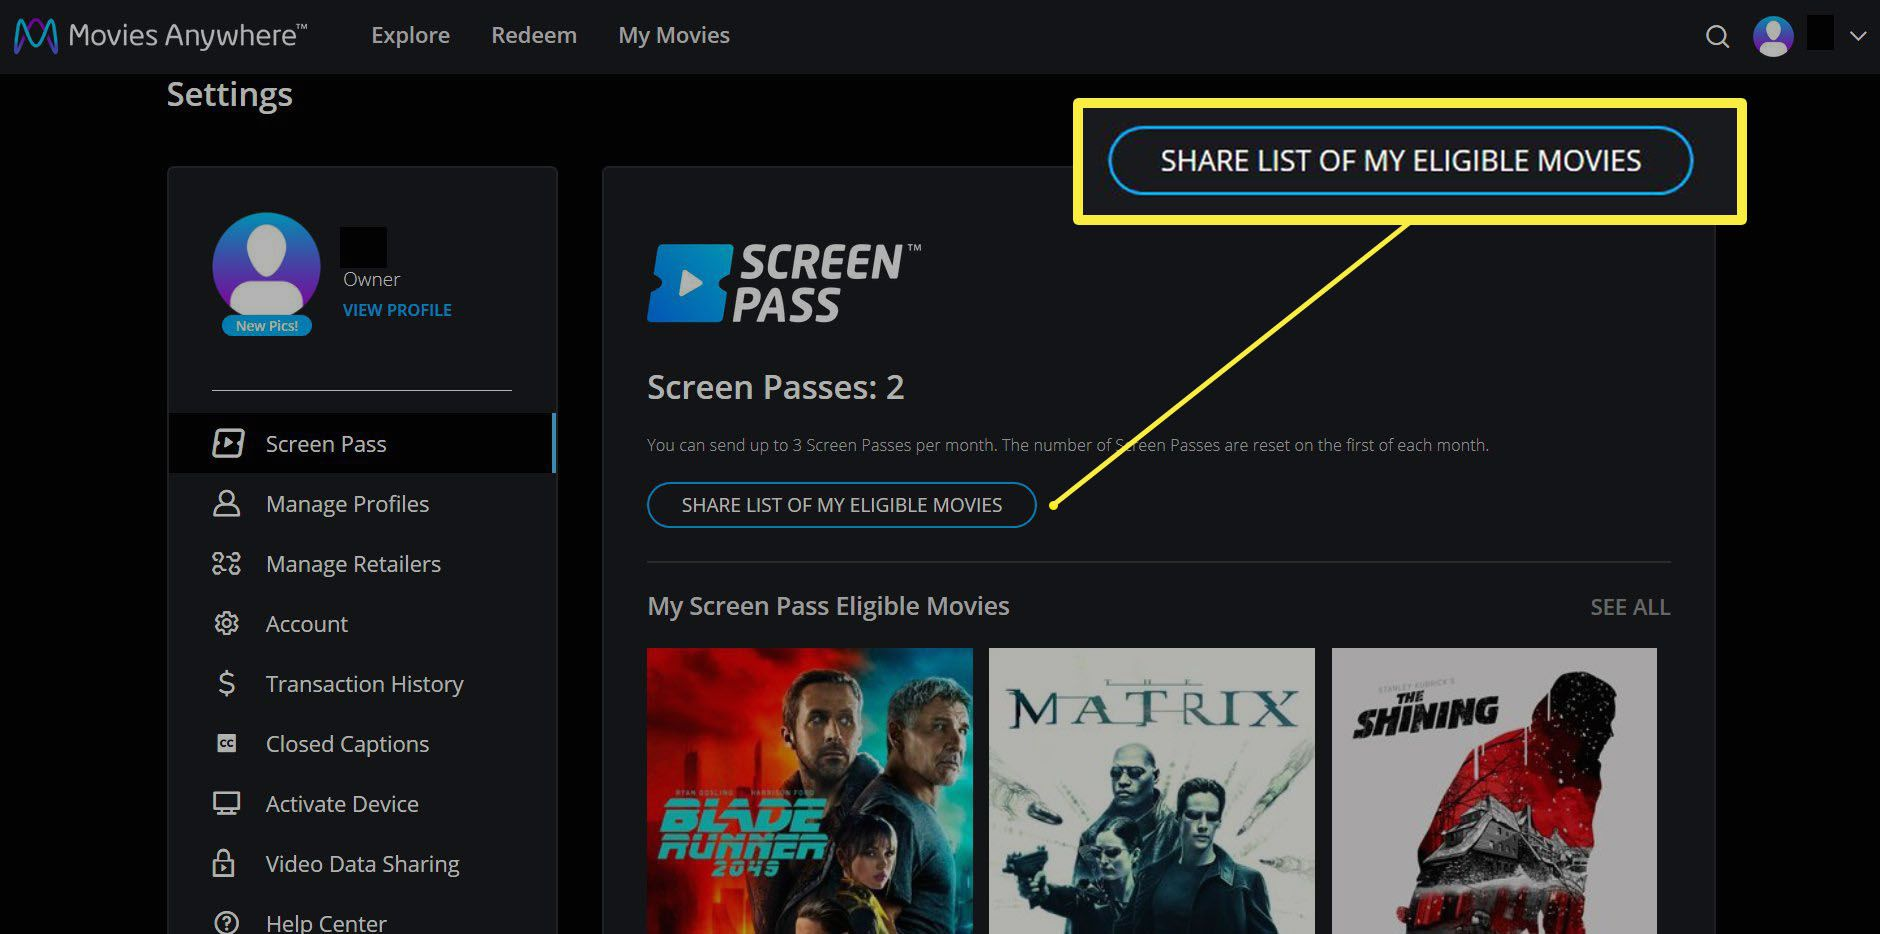 Screen passes with option to share list of eligible movies on the Movies Anywhere site.